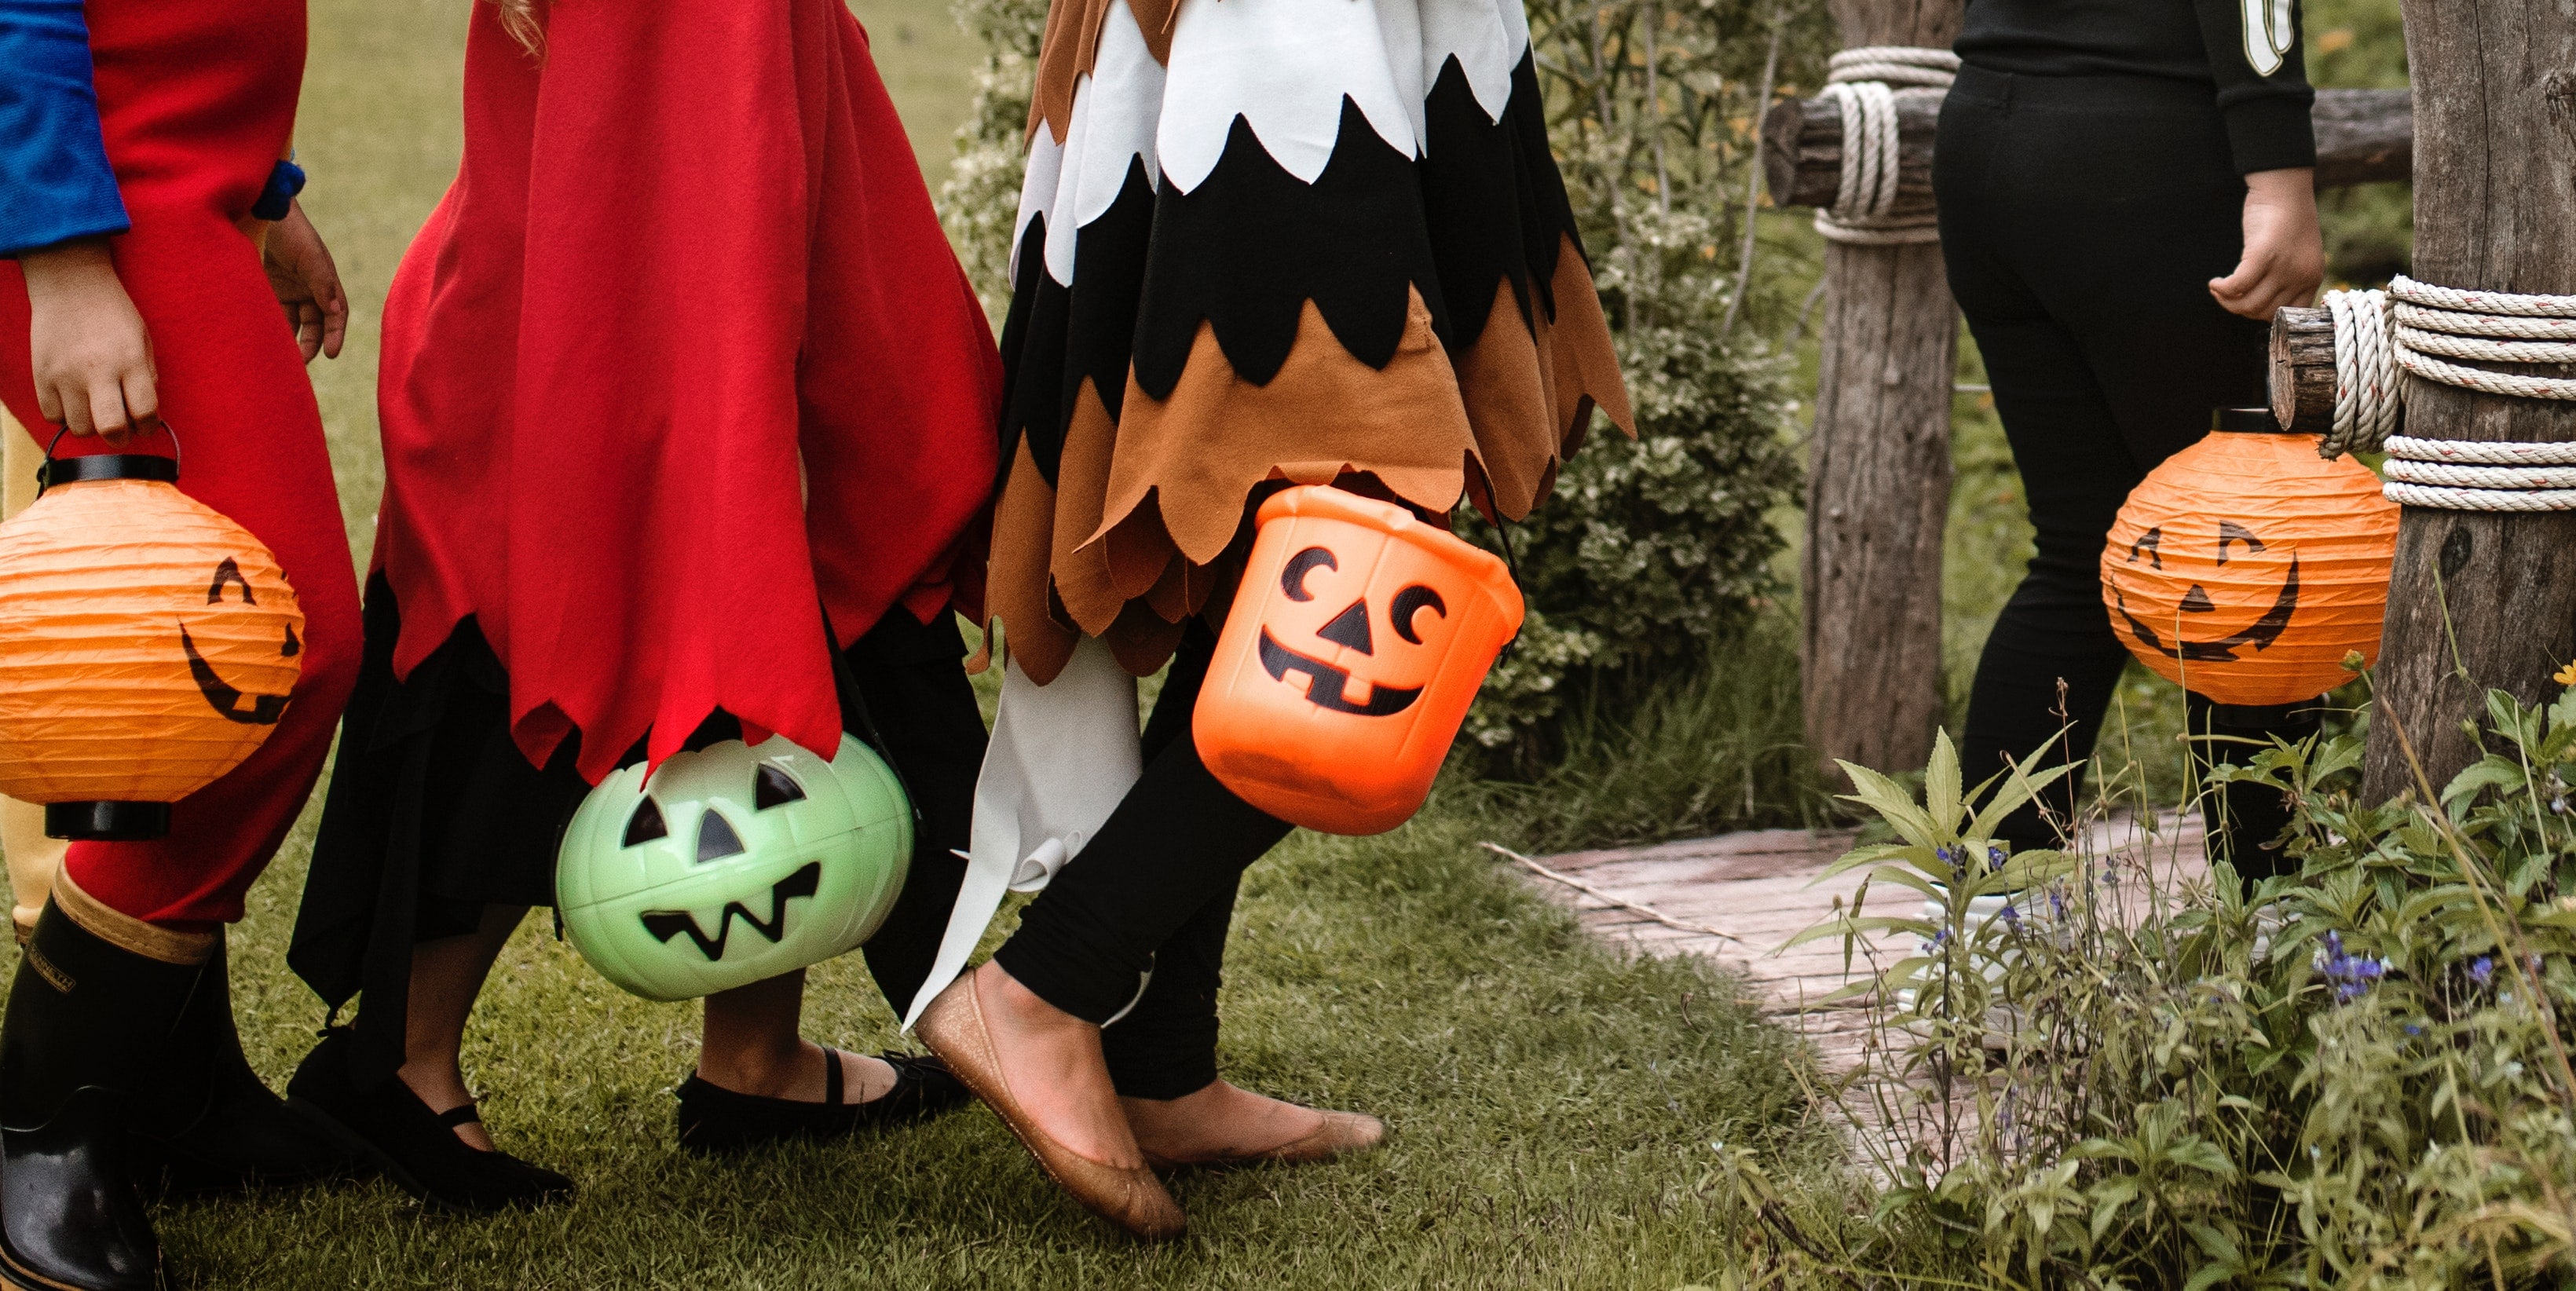 Four children dressed in halloween costumes carry plastic jack-o-lantern buckets as they walk on the grass